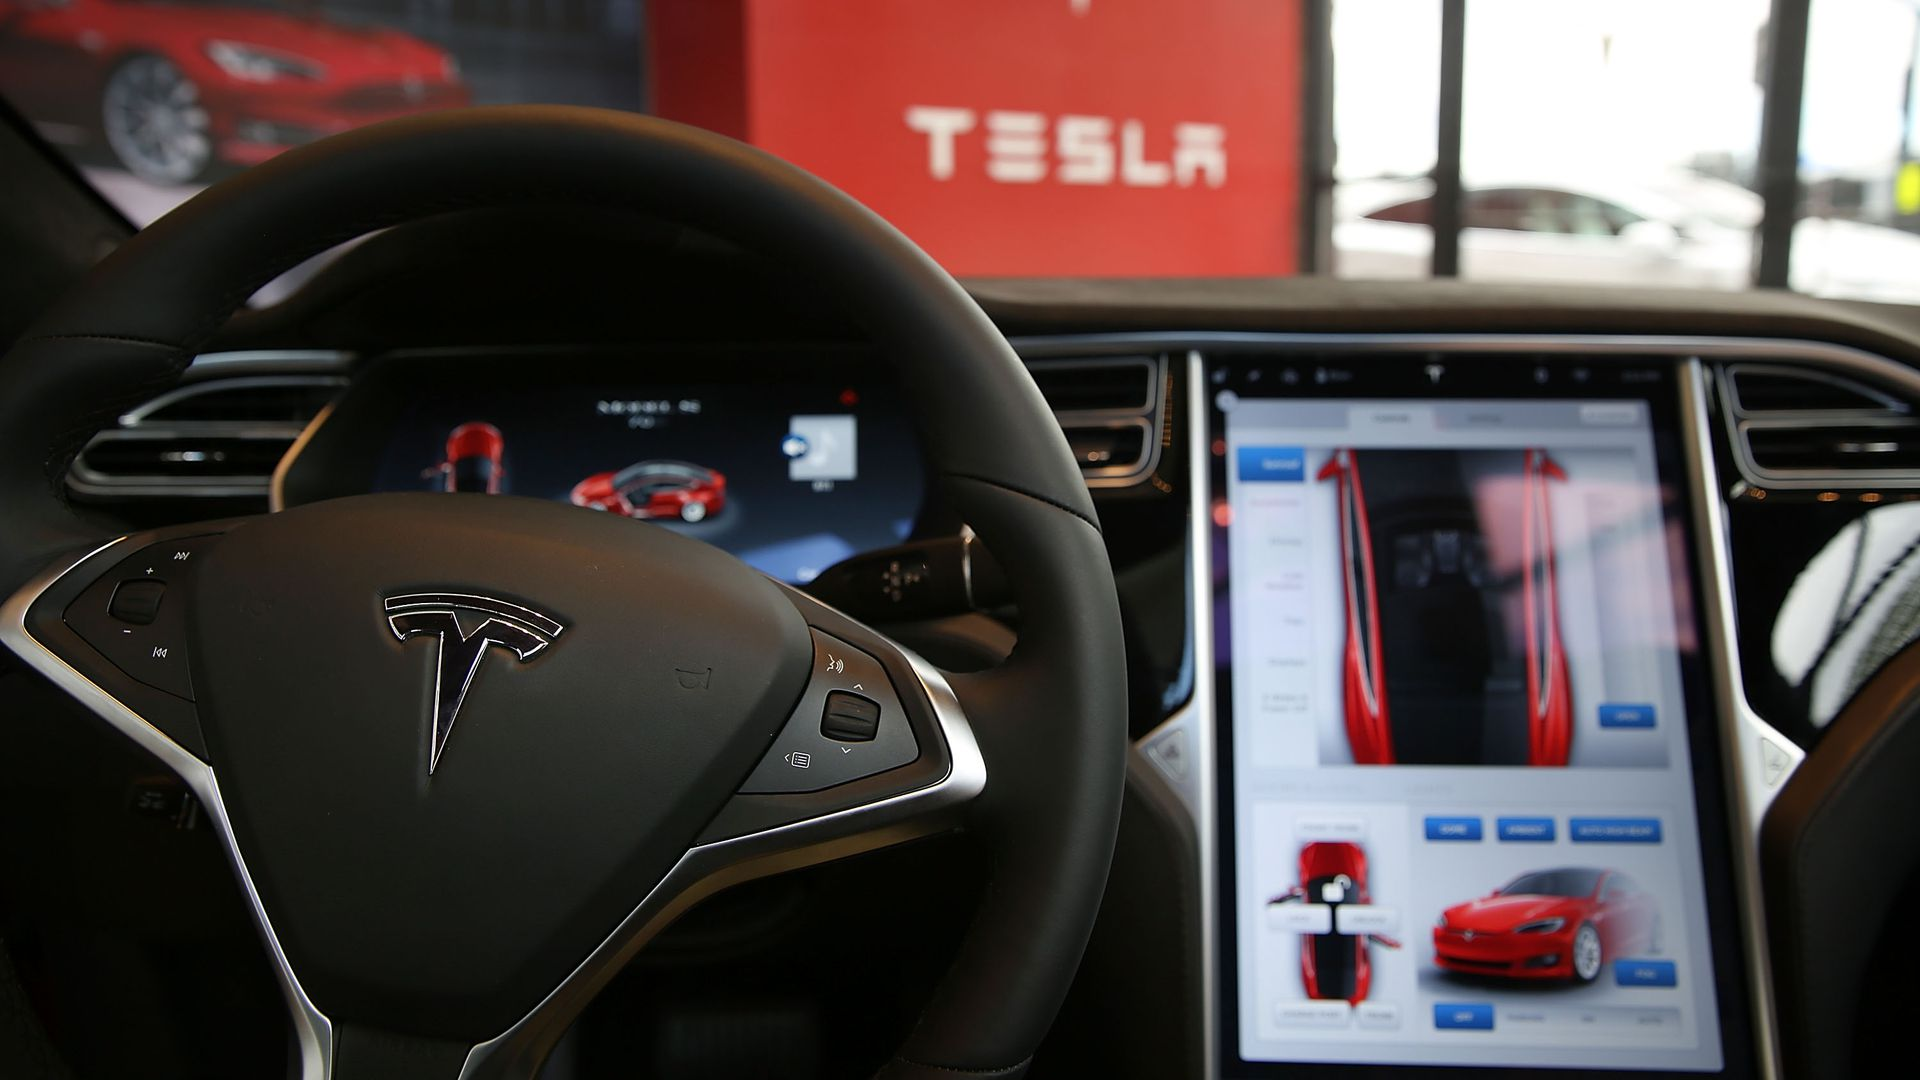 Steering wheel and dashboard display of a Tesla